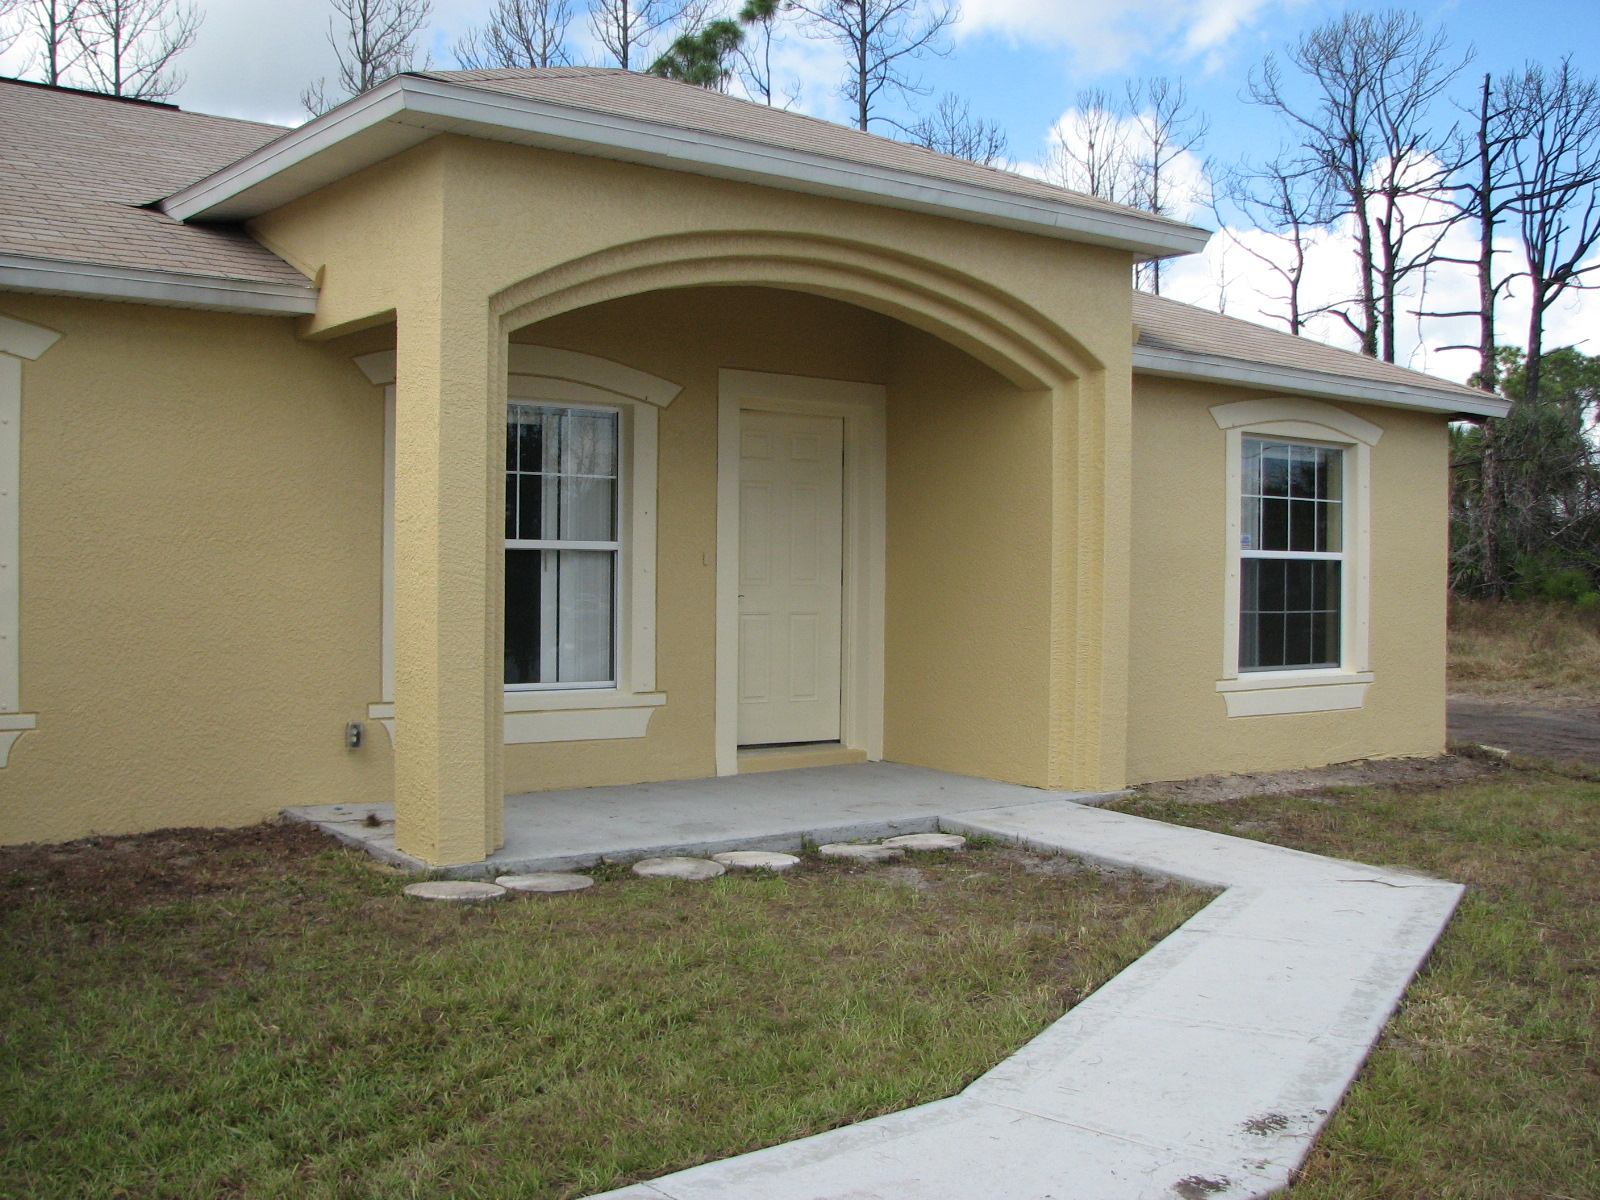 Stucco repairs archives peck drywall and painting - Exterior house painting costs property ...